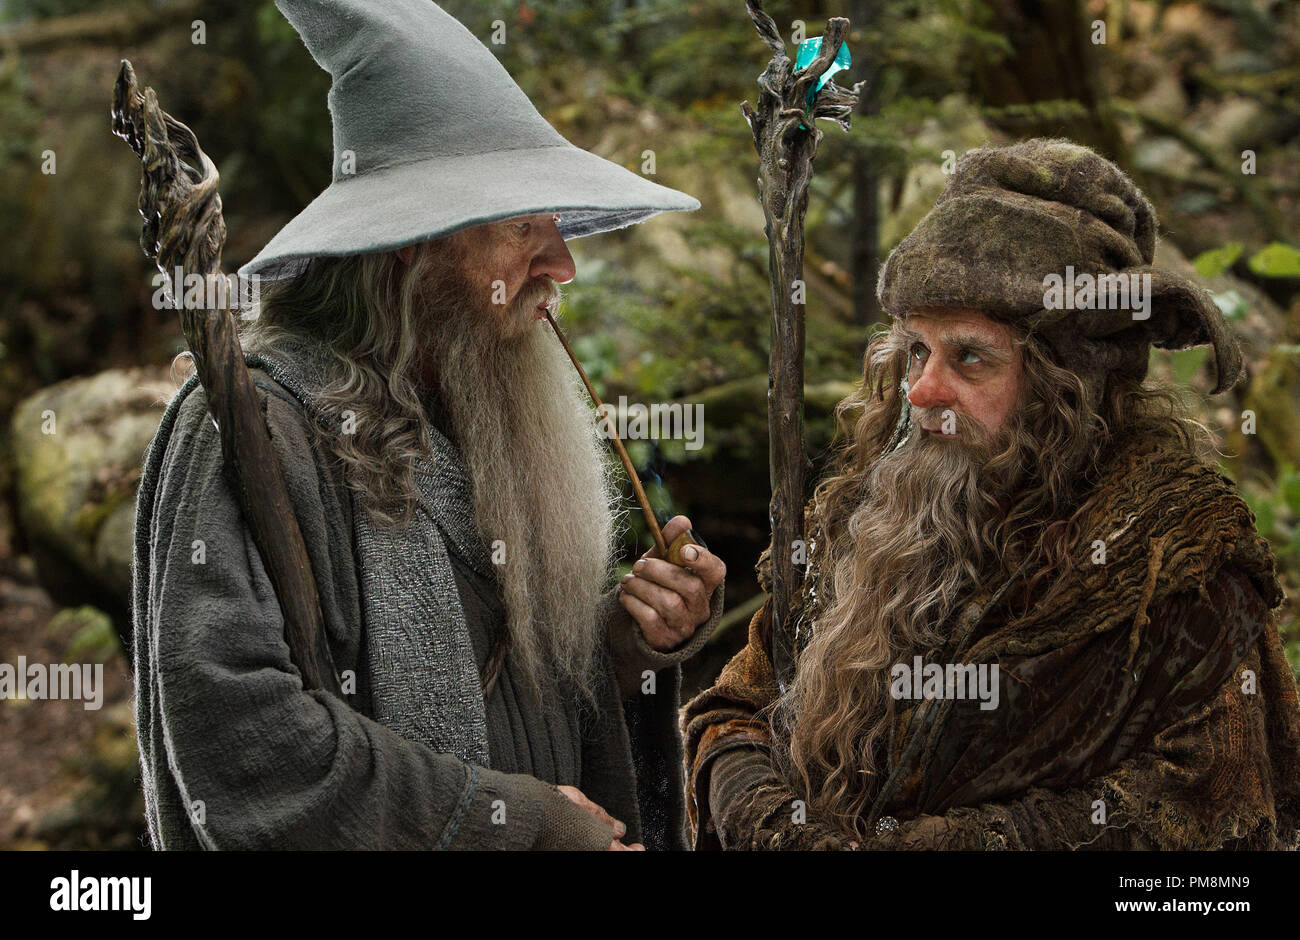 "(L-r) IAN McKELLEN as Gandalf and SYLVESTER McCOY as Radagast in the fantasy adventure ""THE HOBBIT: AN UNEXPECTED JOURNEY,"" a production of New Line Cinema and Metro-Goldwyn-Mayer Pictures (MGM), released by Warner Bros. Pictures and MGM. - Stock Image"